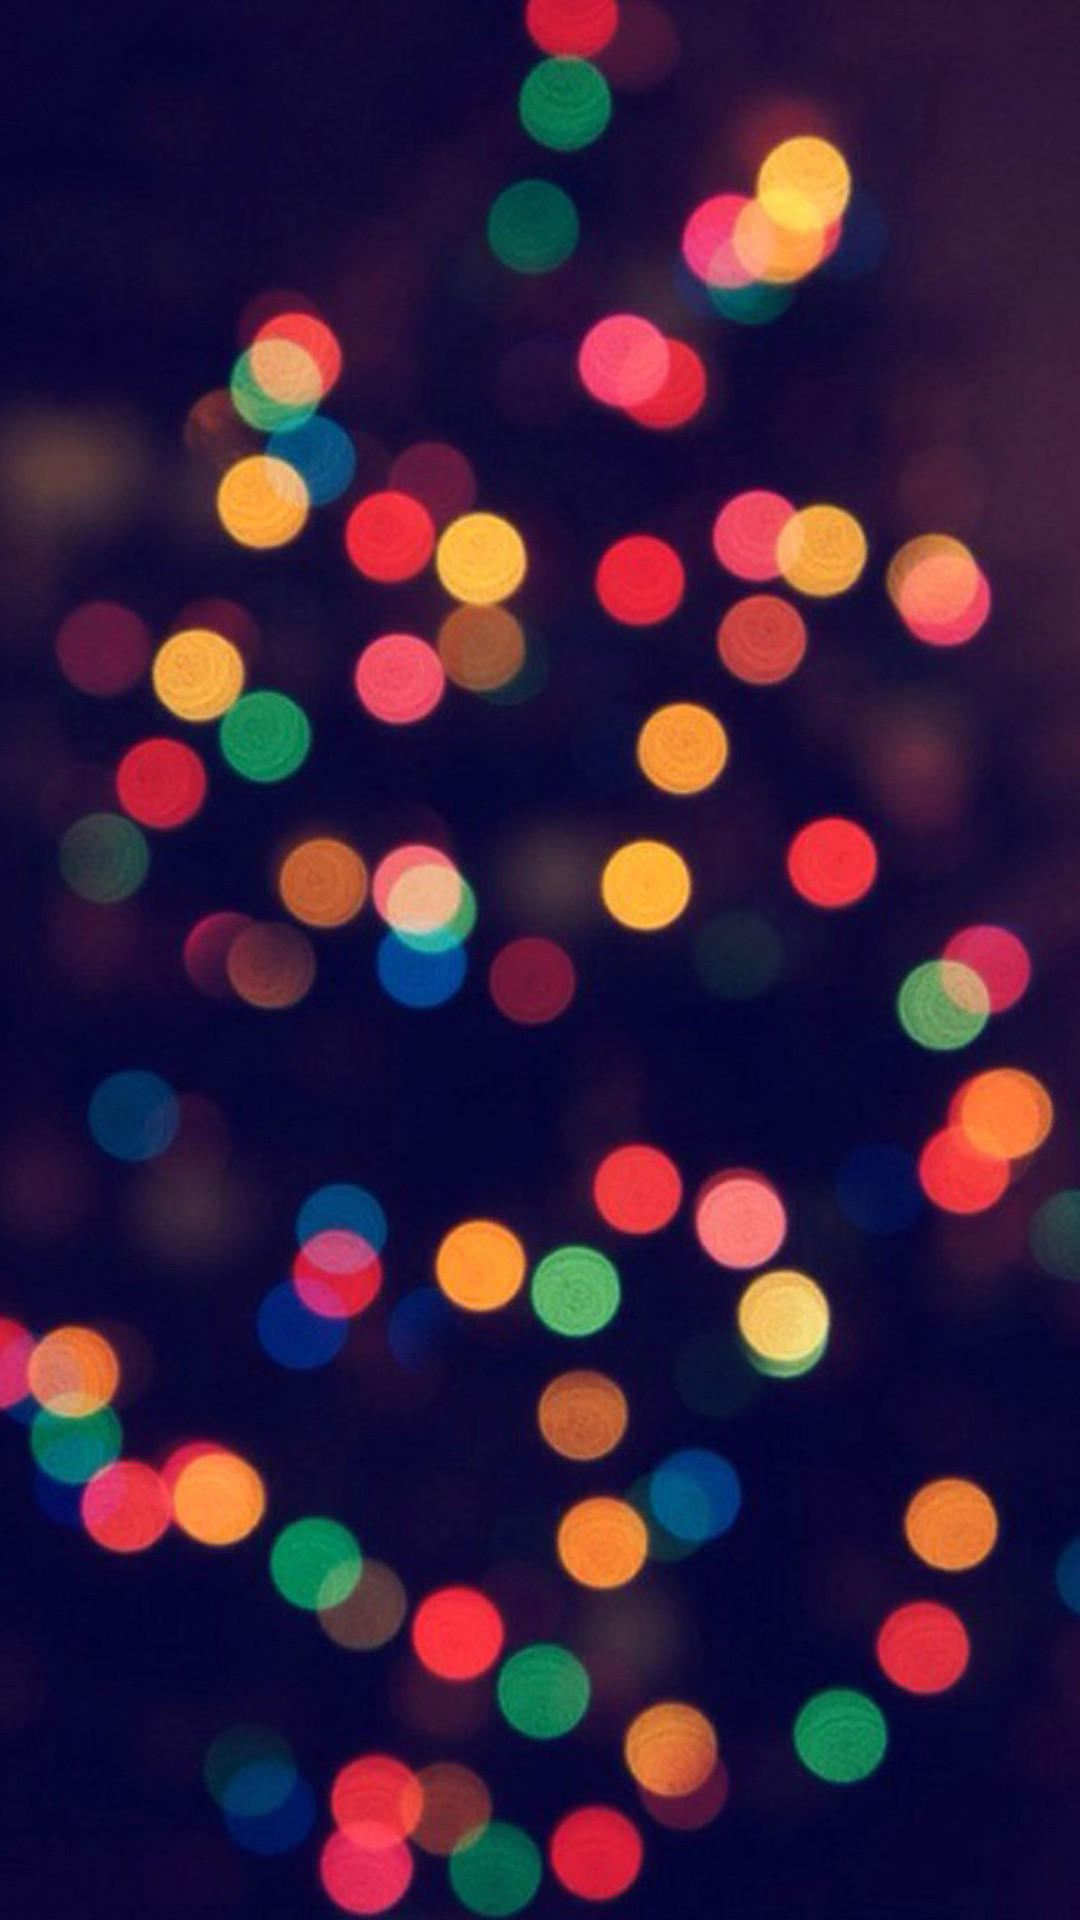 20 Christmas Wallpapers for iPhone and iPhone 6 – iPhoneHeat